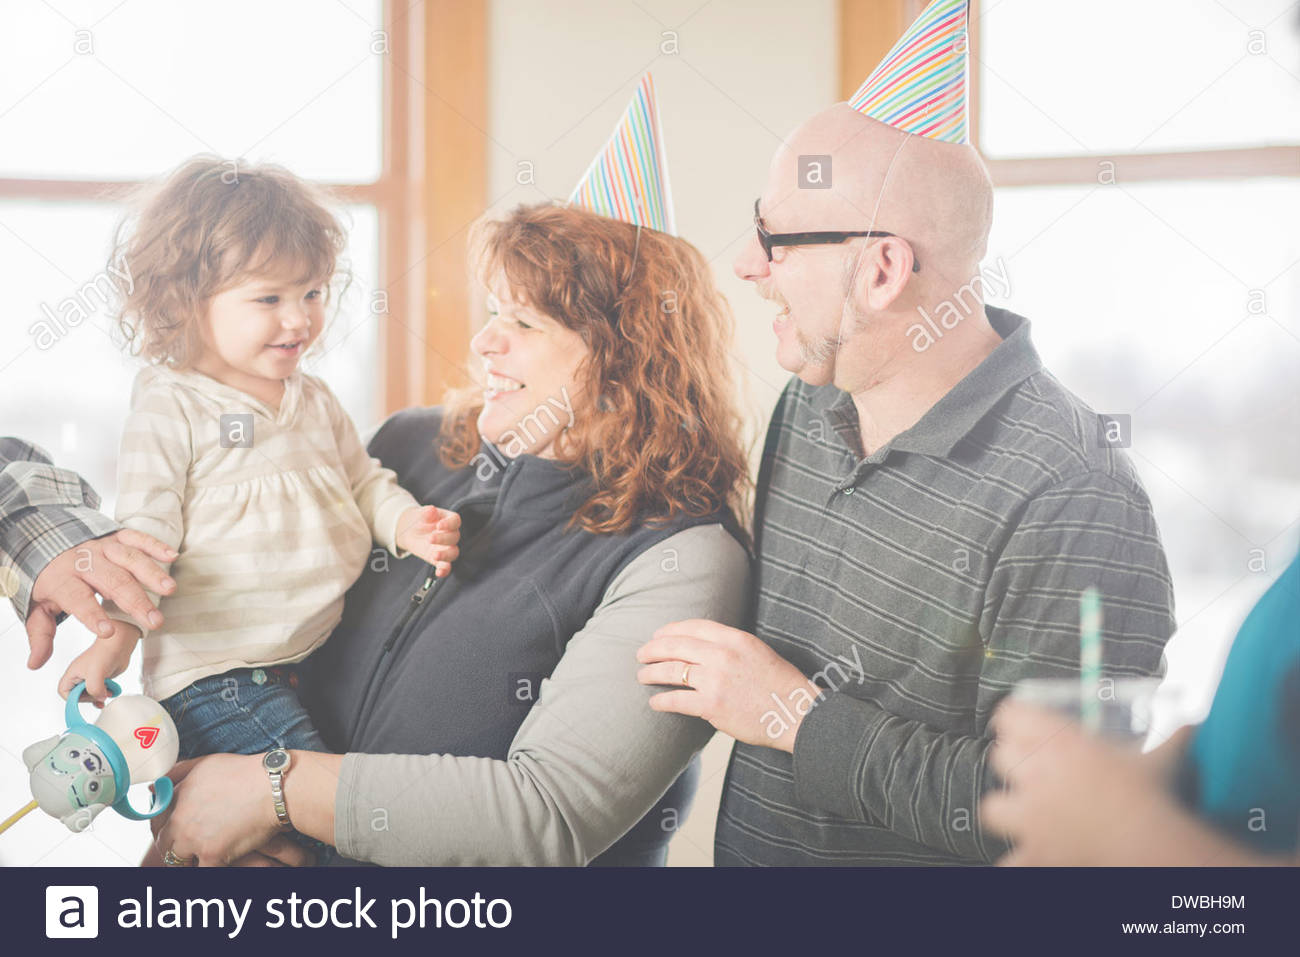 Female toddler and adoring family - Stock Image